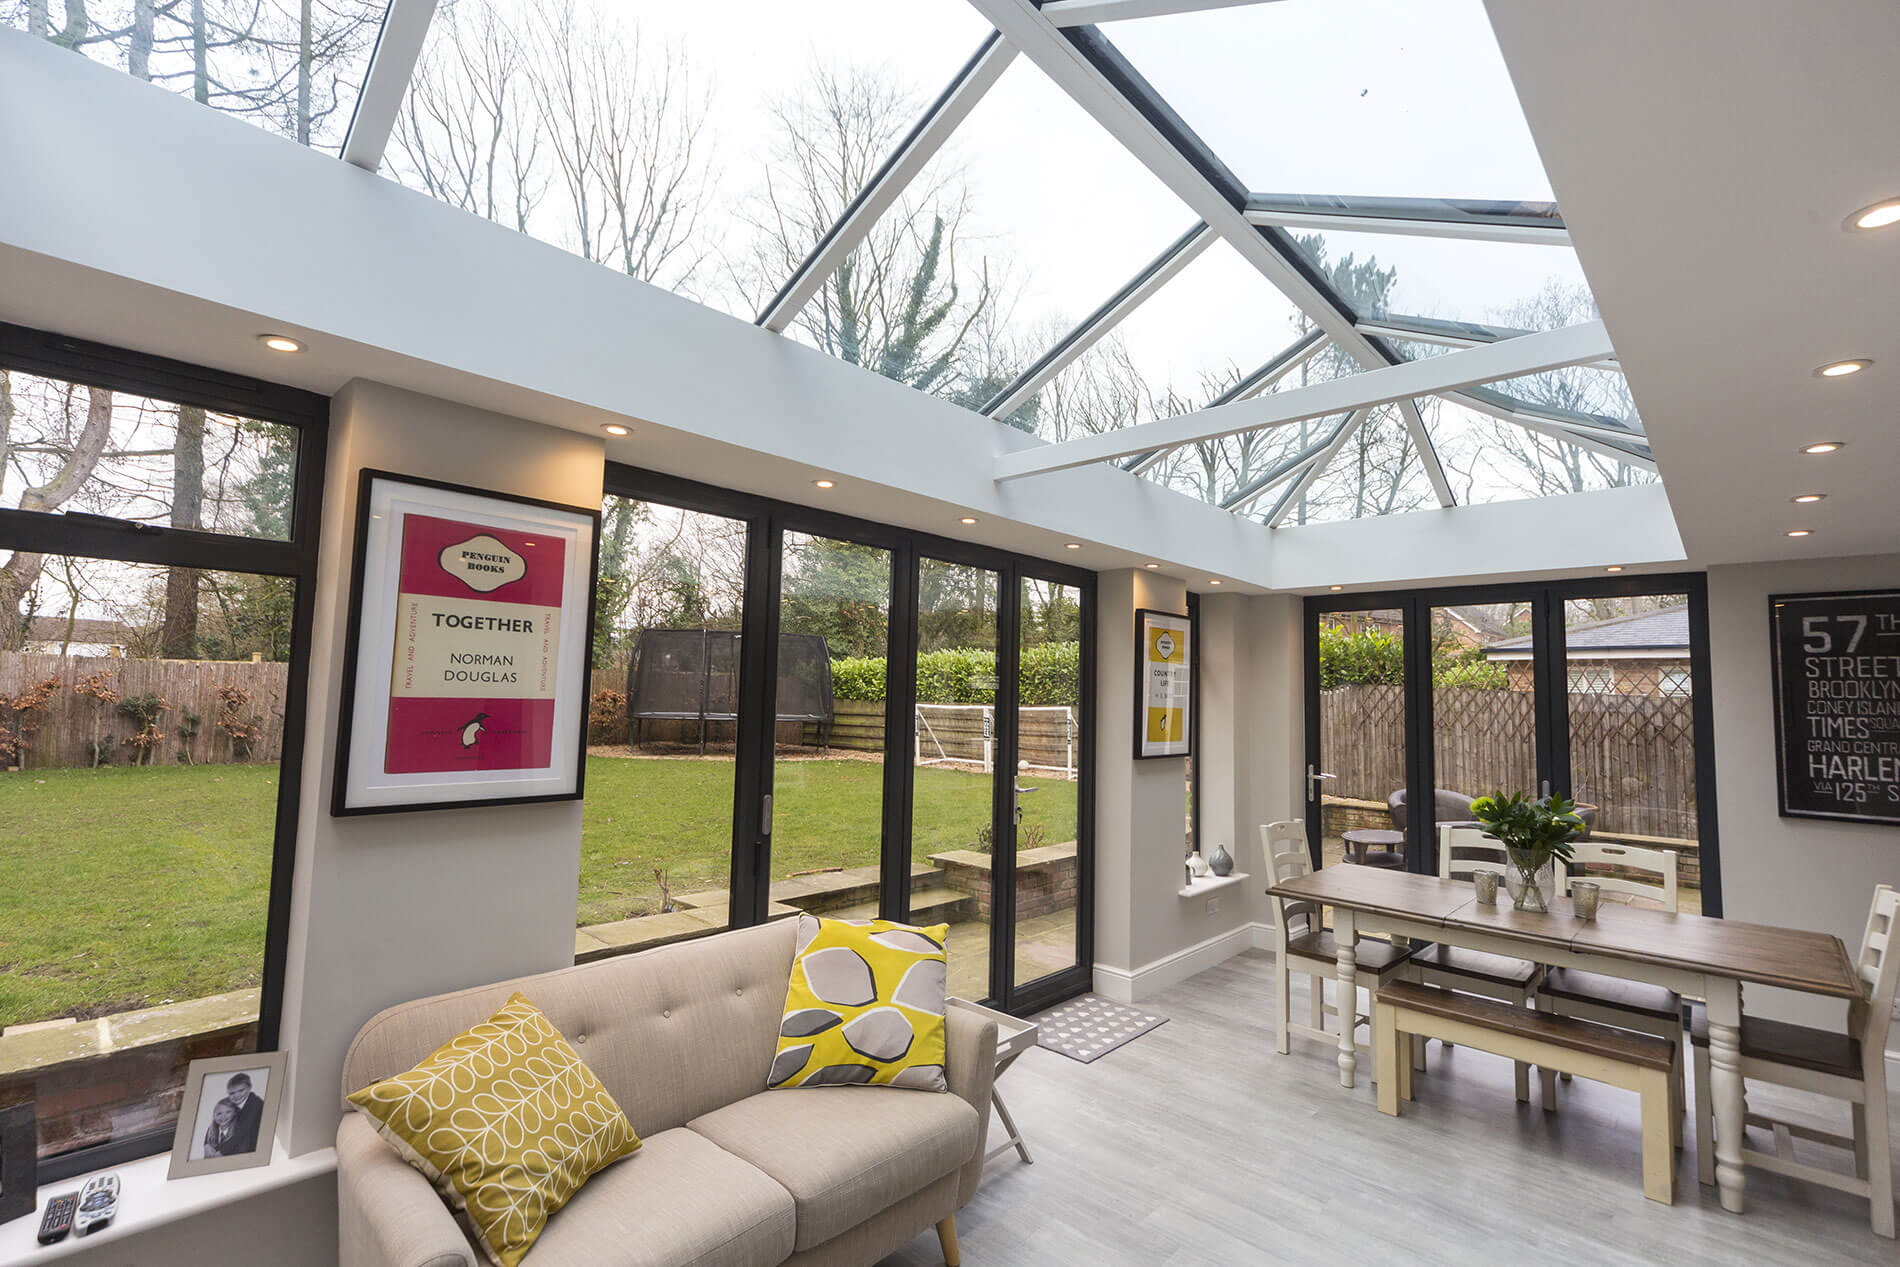 Conservatory Roofing Edgware